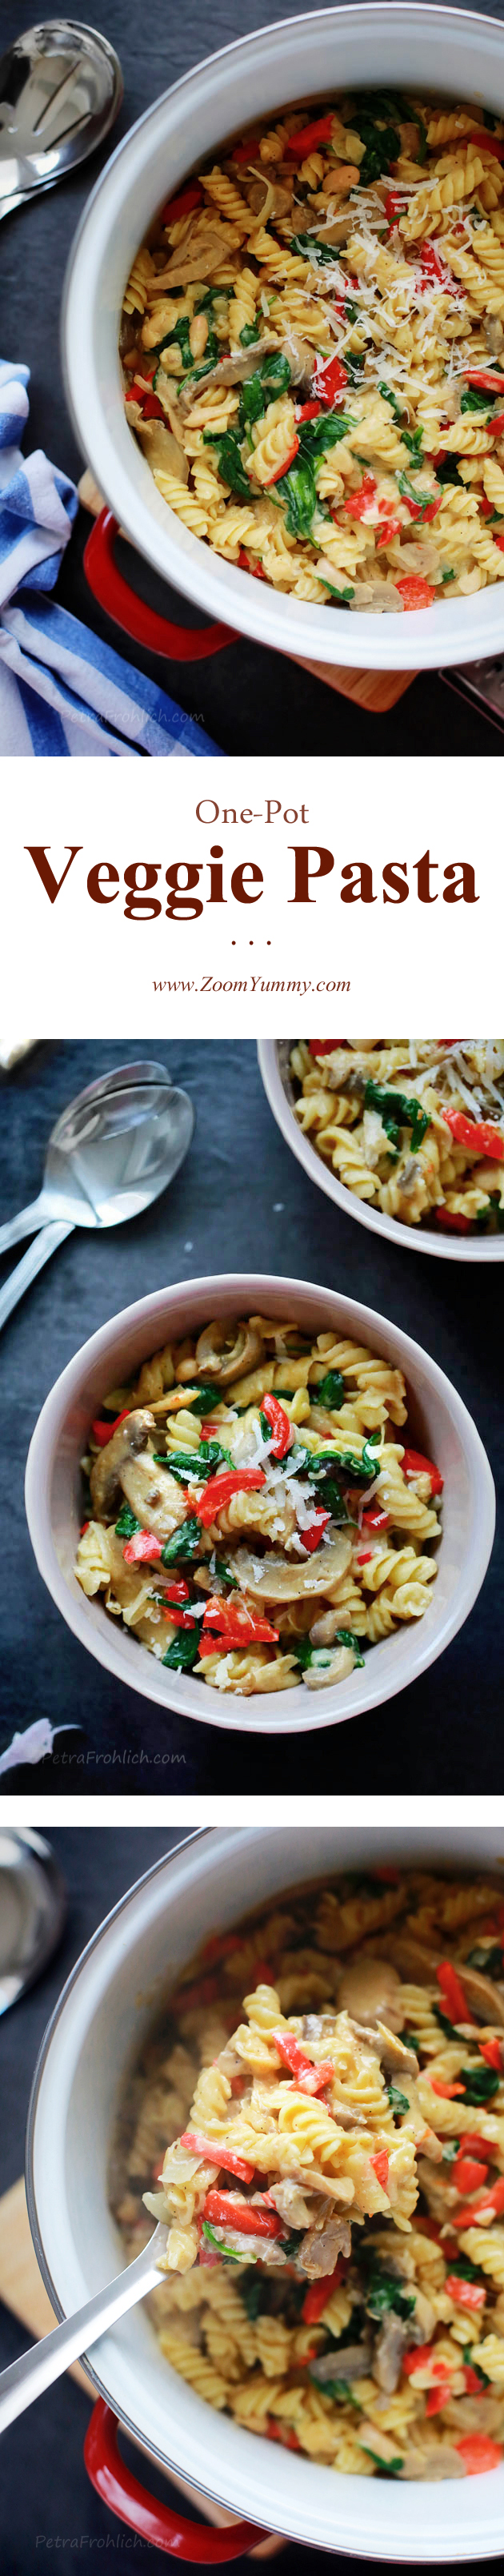 one-pot-veggie-pasta-recipe